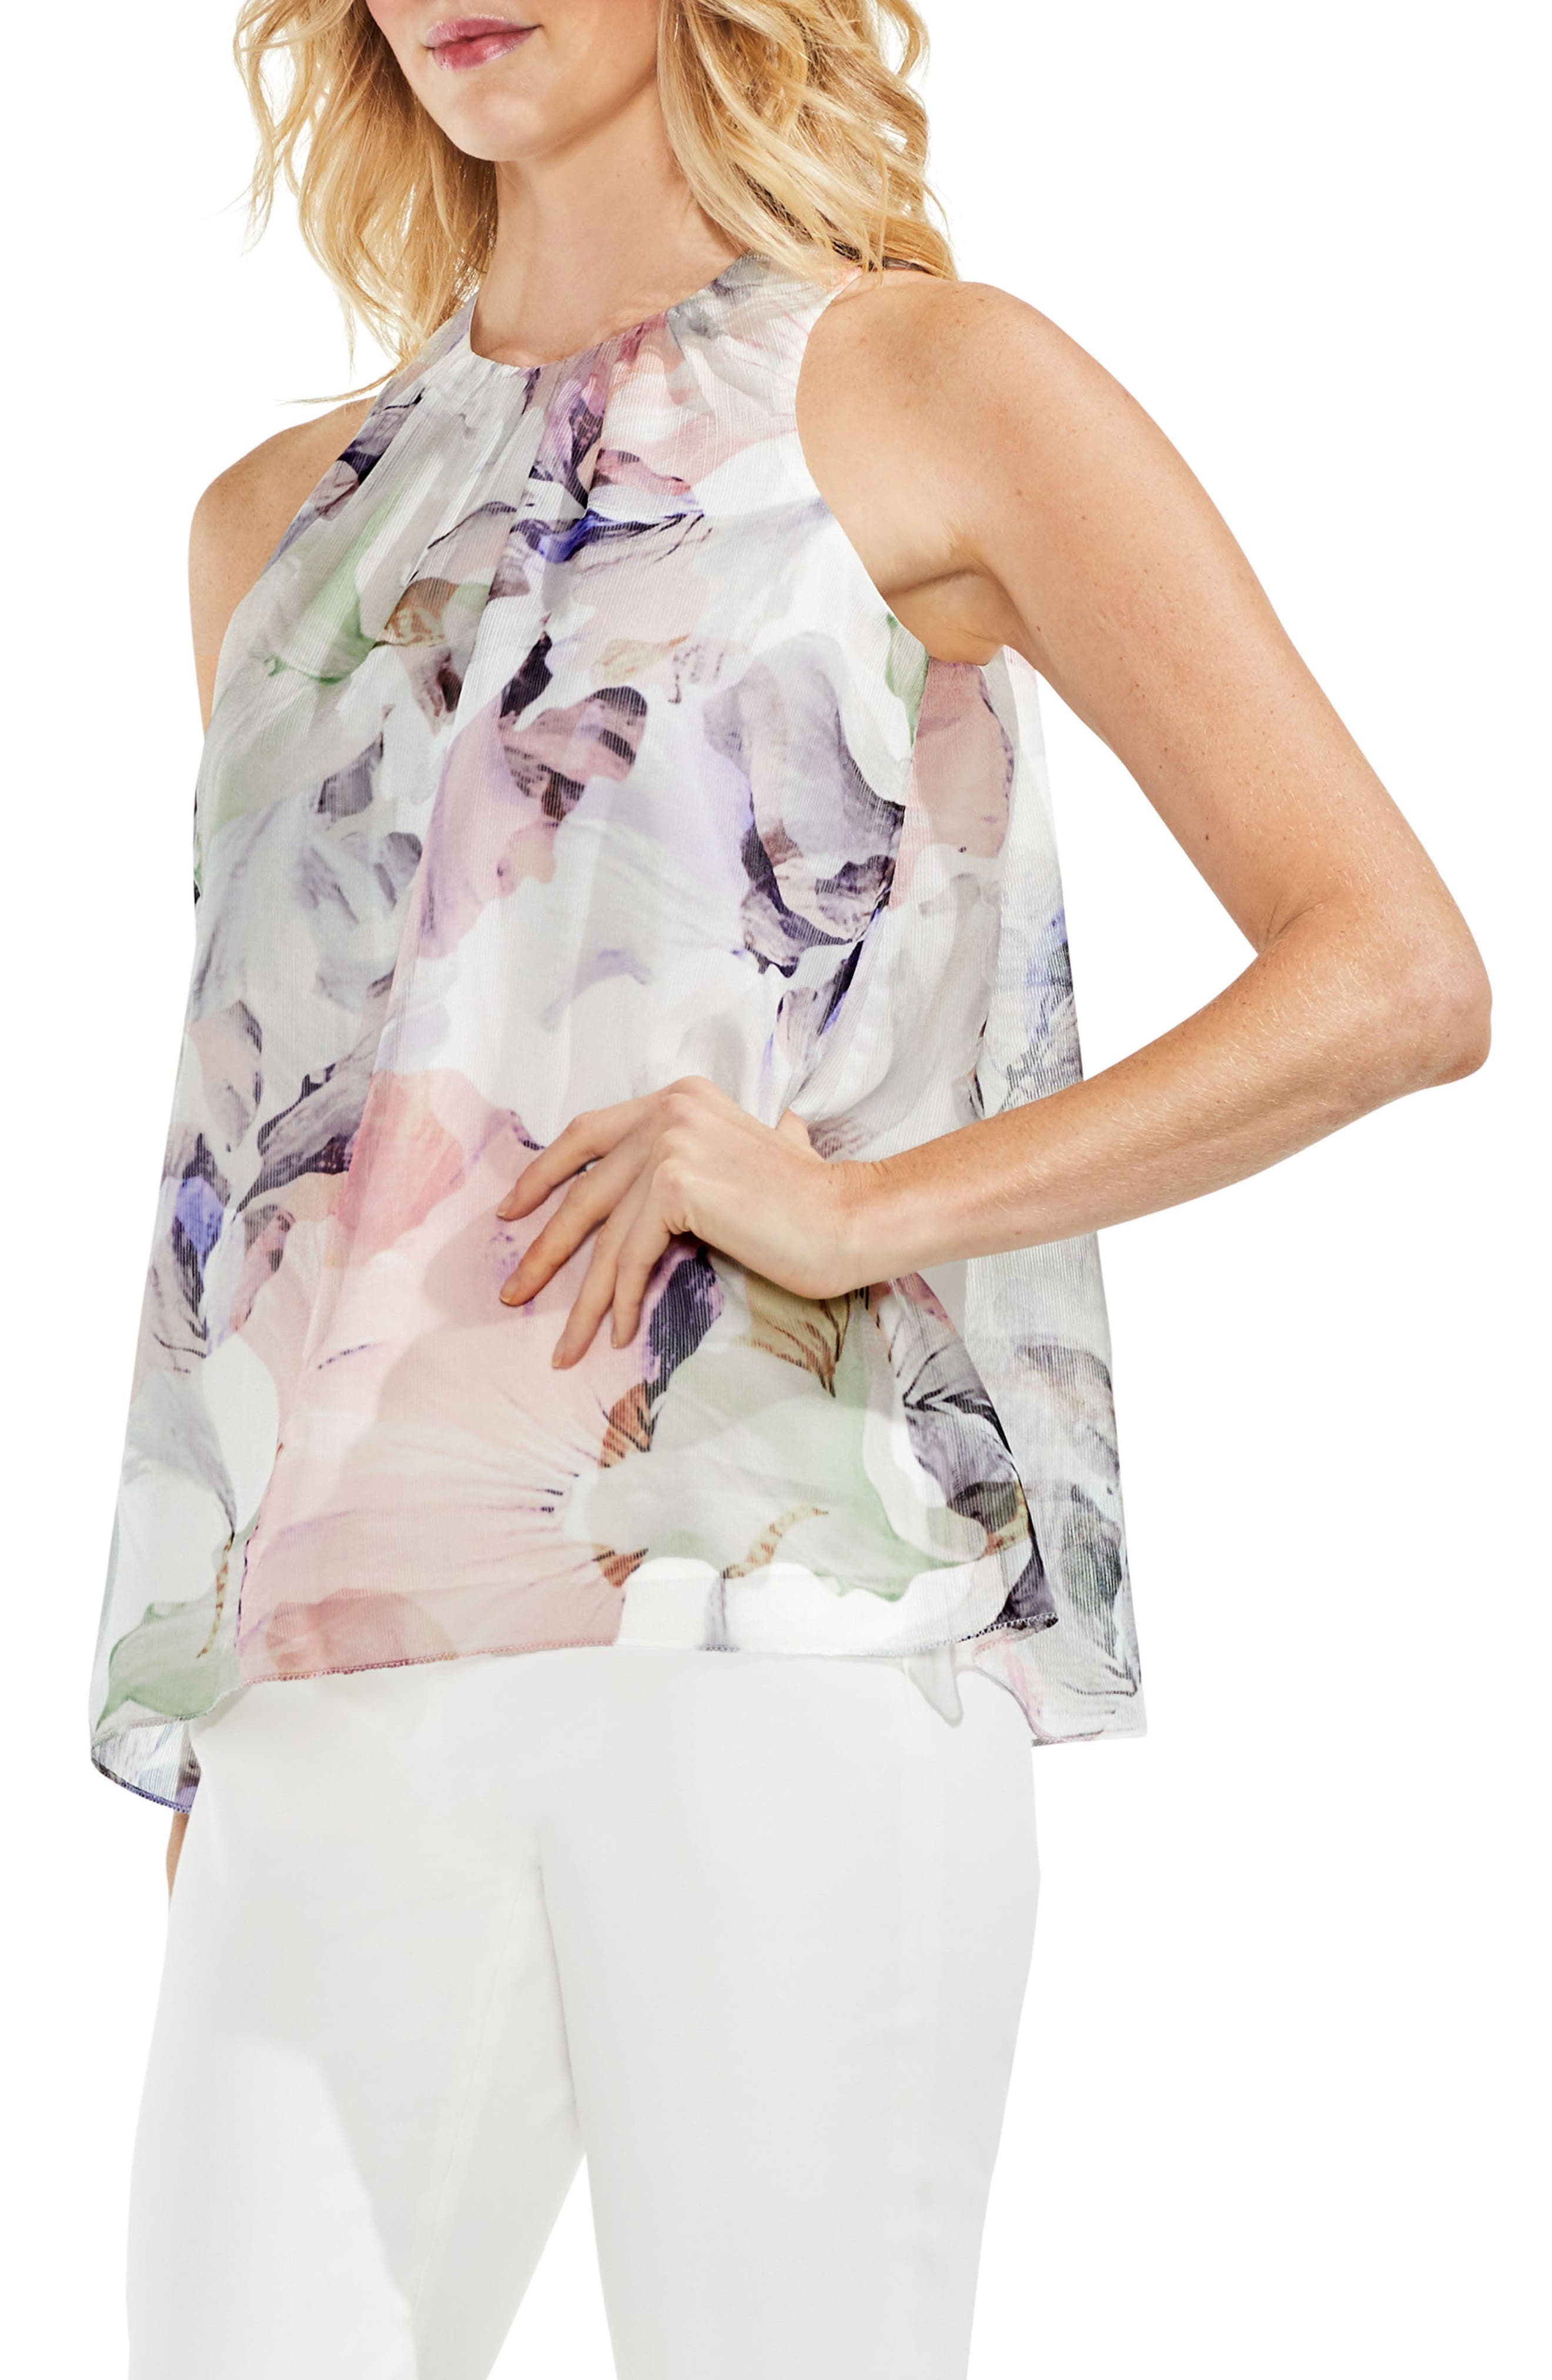 Vince Camuto Sleeveless Floral Chiffon Top